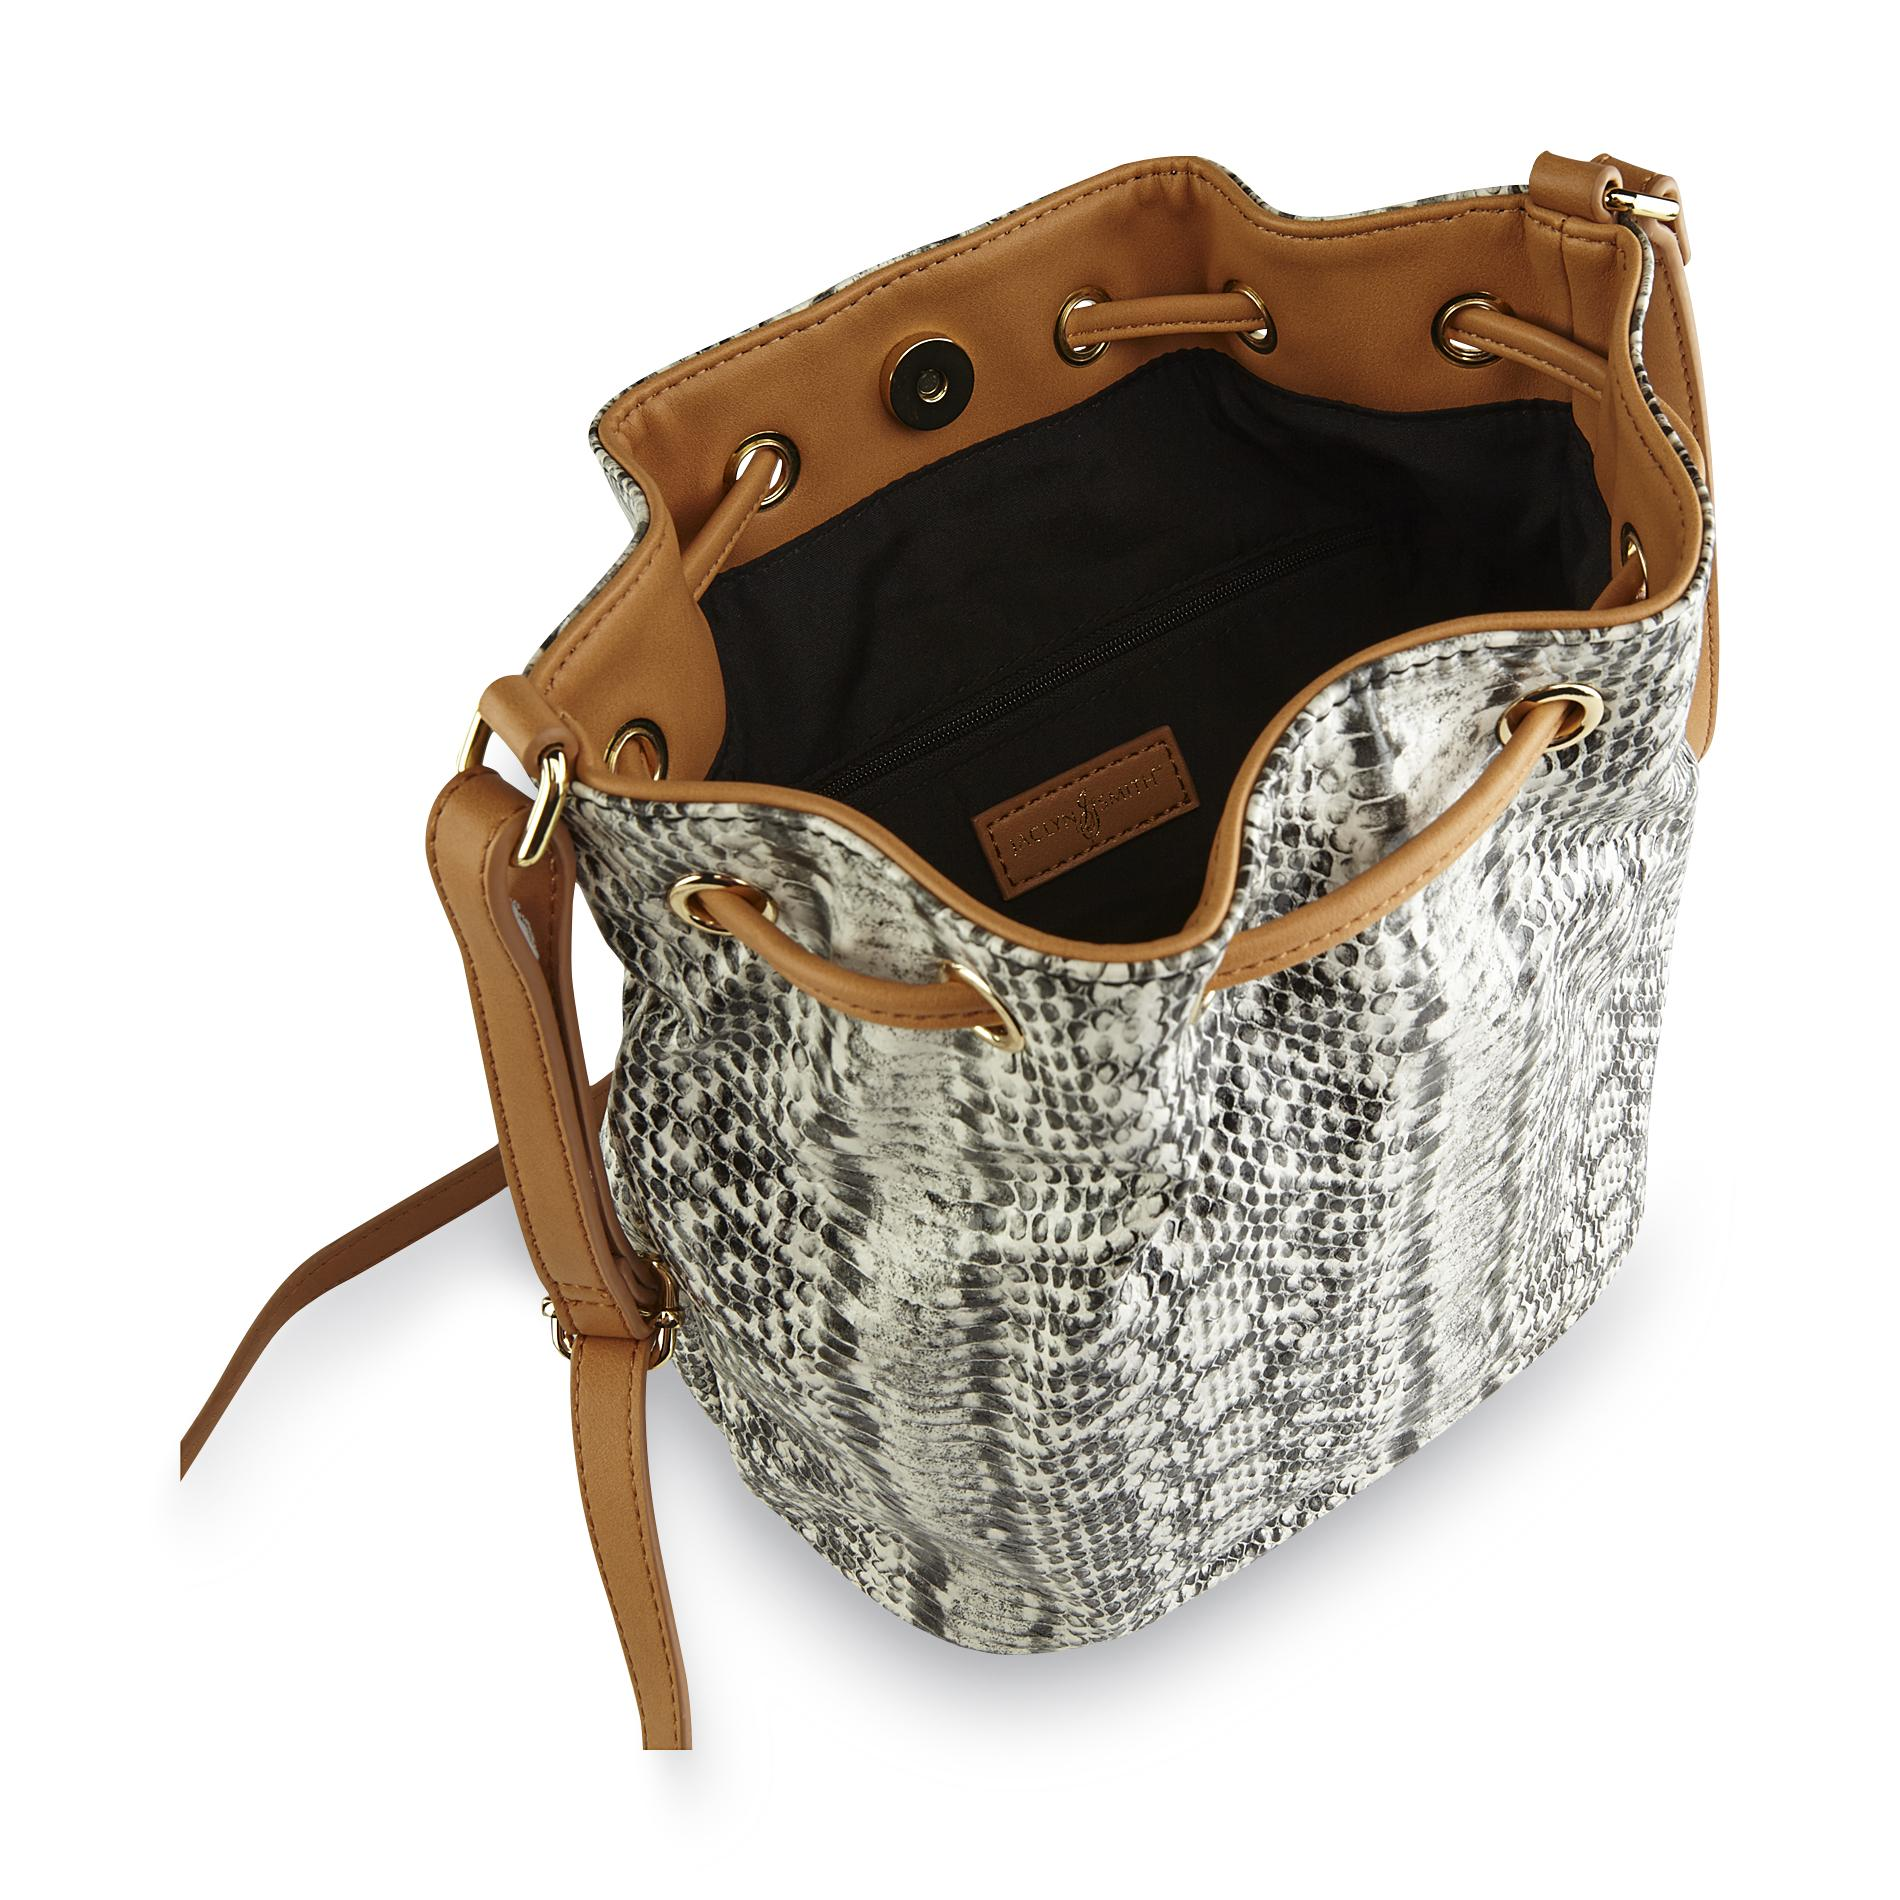 Jaclyn Smith Women's Bucket Bag - Snakeskin Print